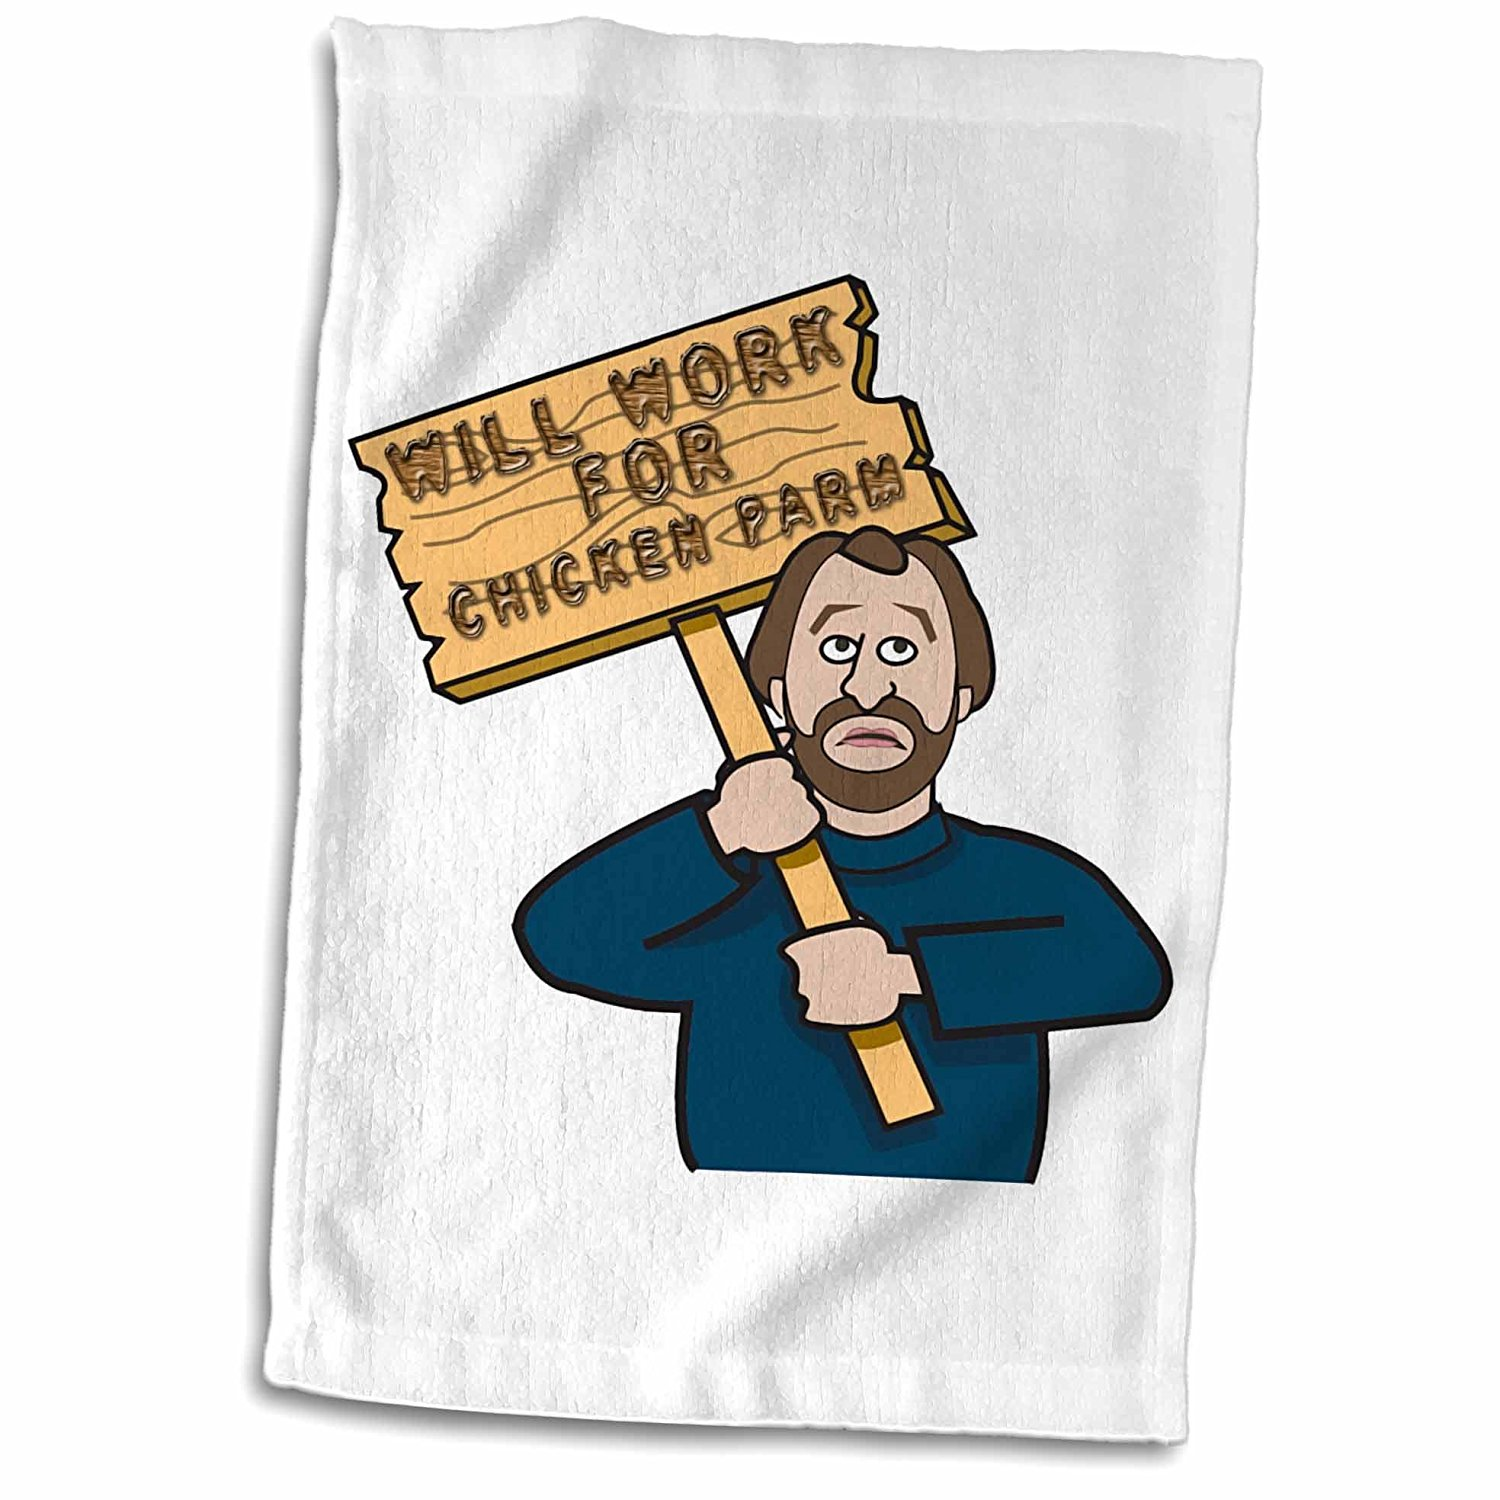 3dRose Dooni Designs Humorous Bribery Signs Sarcasm Designs - Funny Humorous Man Guy With A Sign Will Work For Chicken Parm - 12x18 Towel (twl_117049_1)